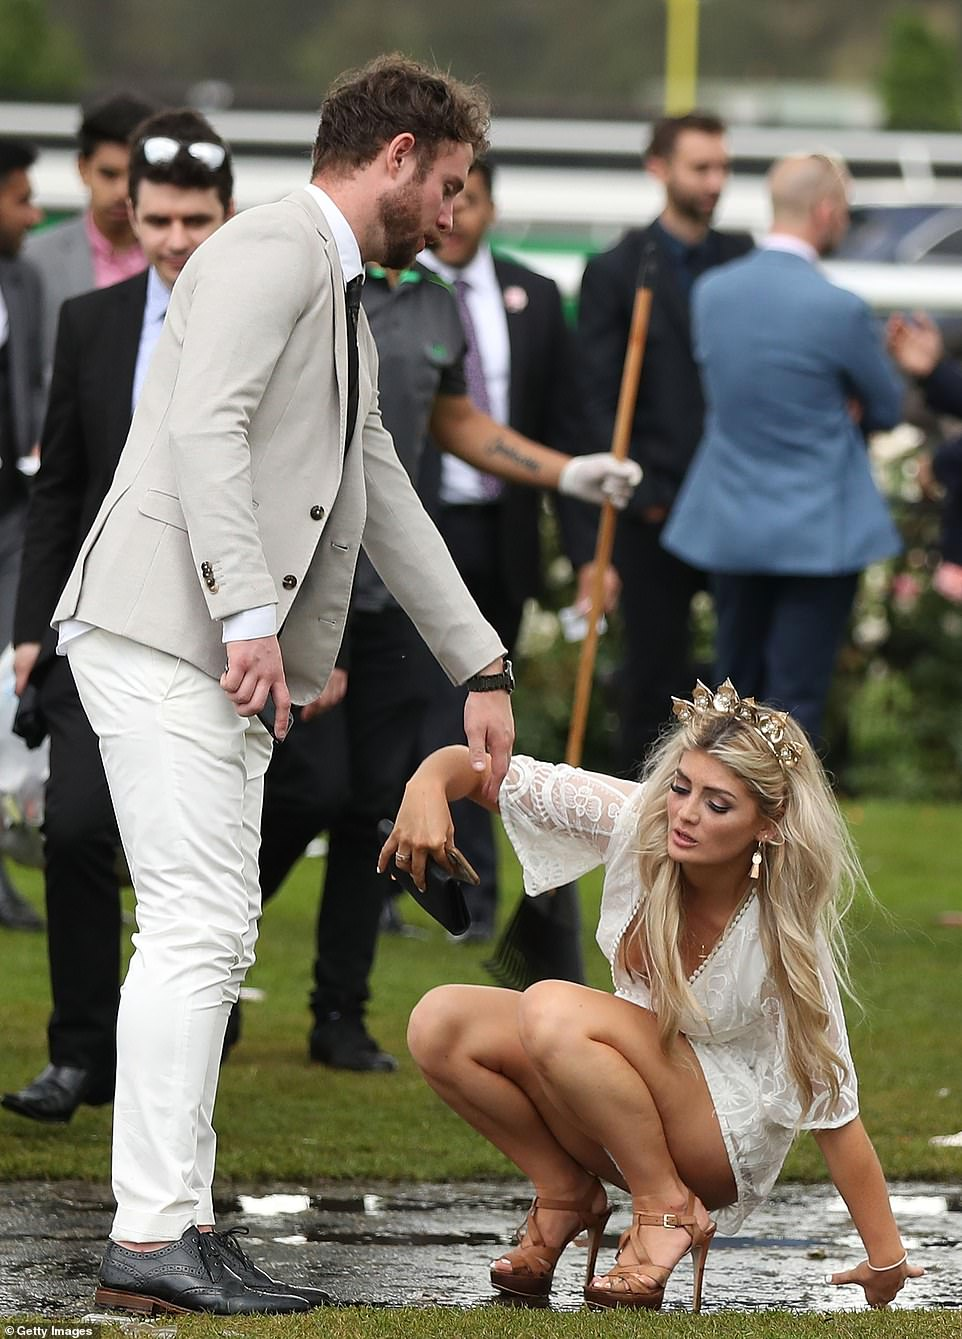 Racegoers stumble as they make their way home following the Melbourne Cup Day at Flemington Racecourse on Tuesday